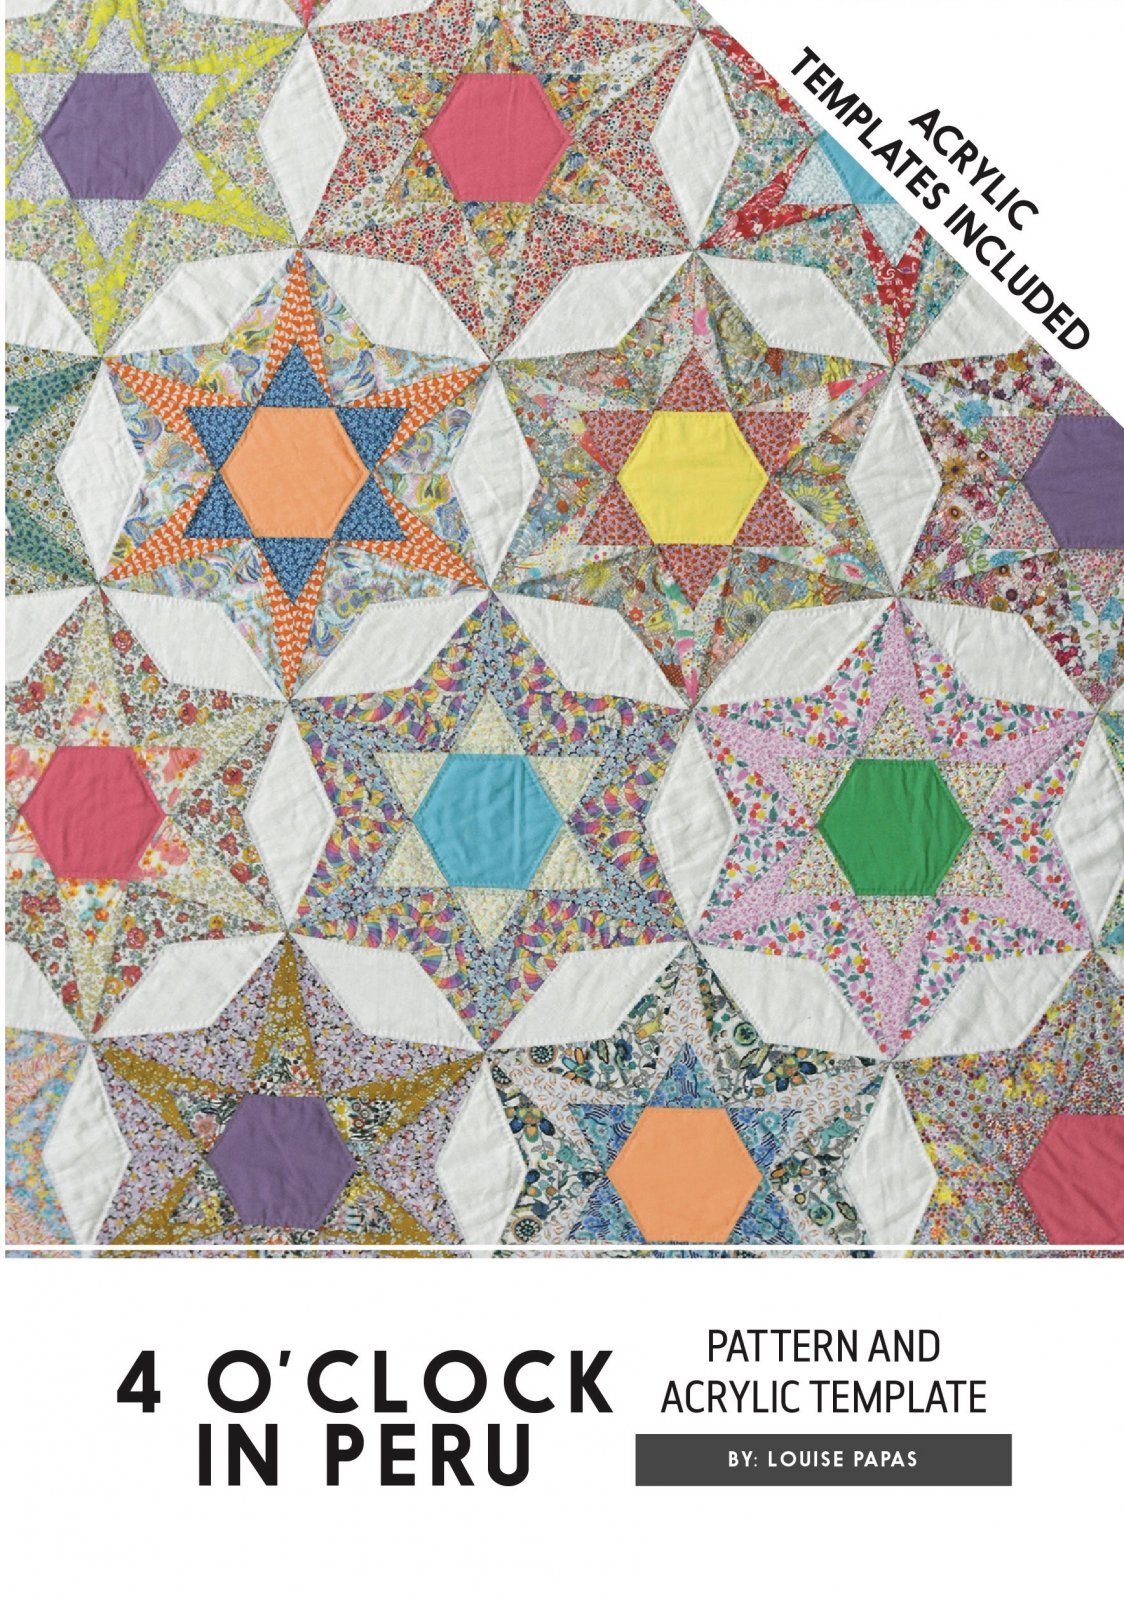 4 O'Clock In Peru Pattern And Acrylic Templates by Louise Papas